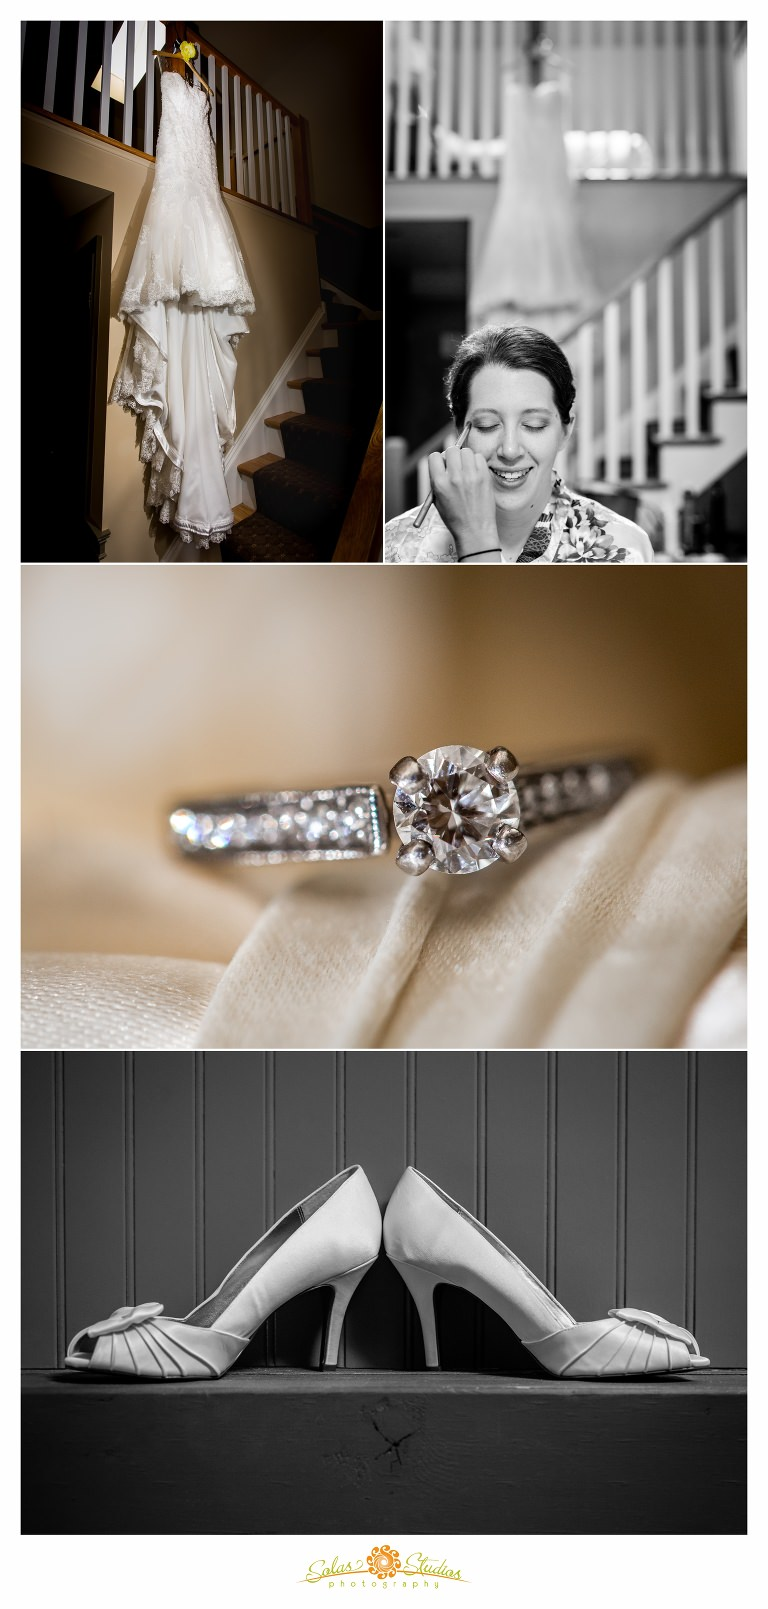 Solas-Studios-wedding-at-Longfellows-Saratoga-Springs-1